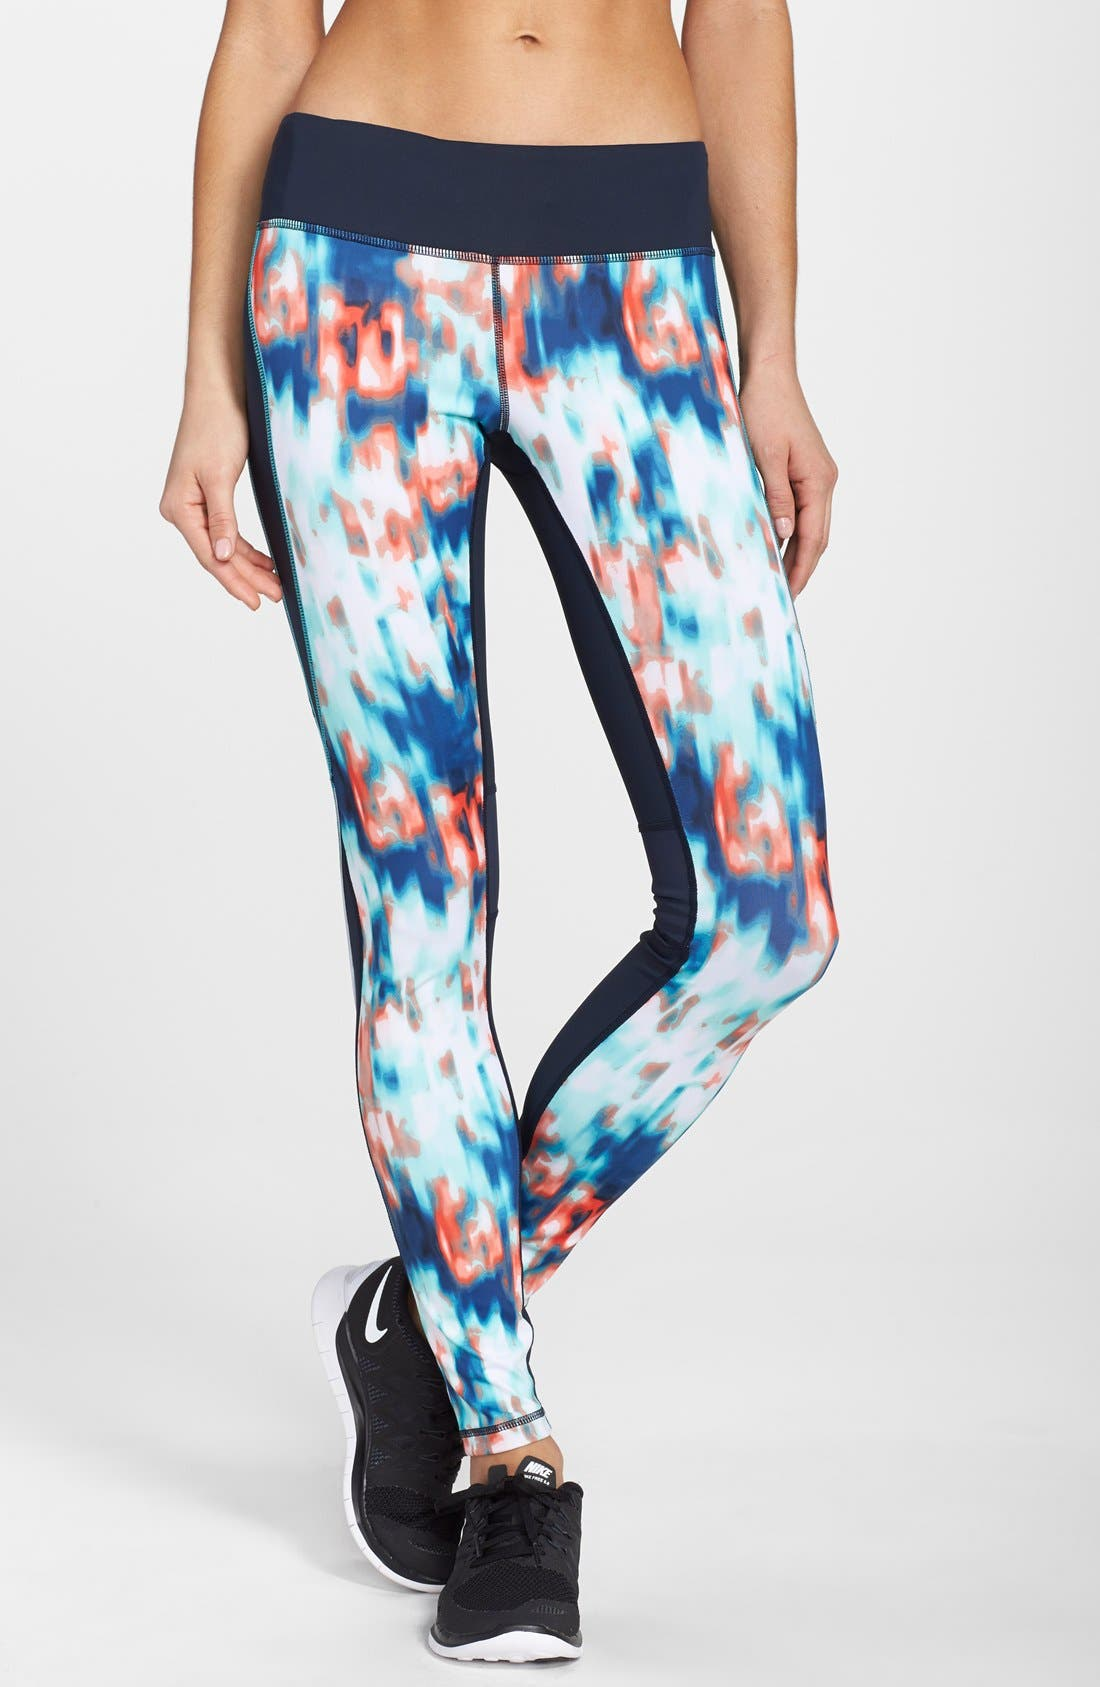 Alternate Image 1 Selected - Zella 'Adrenaline' Running Tights